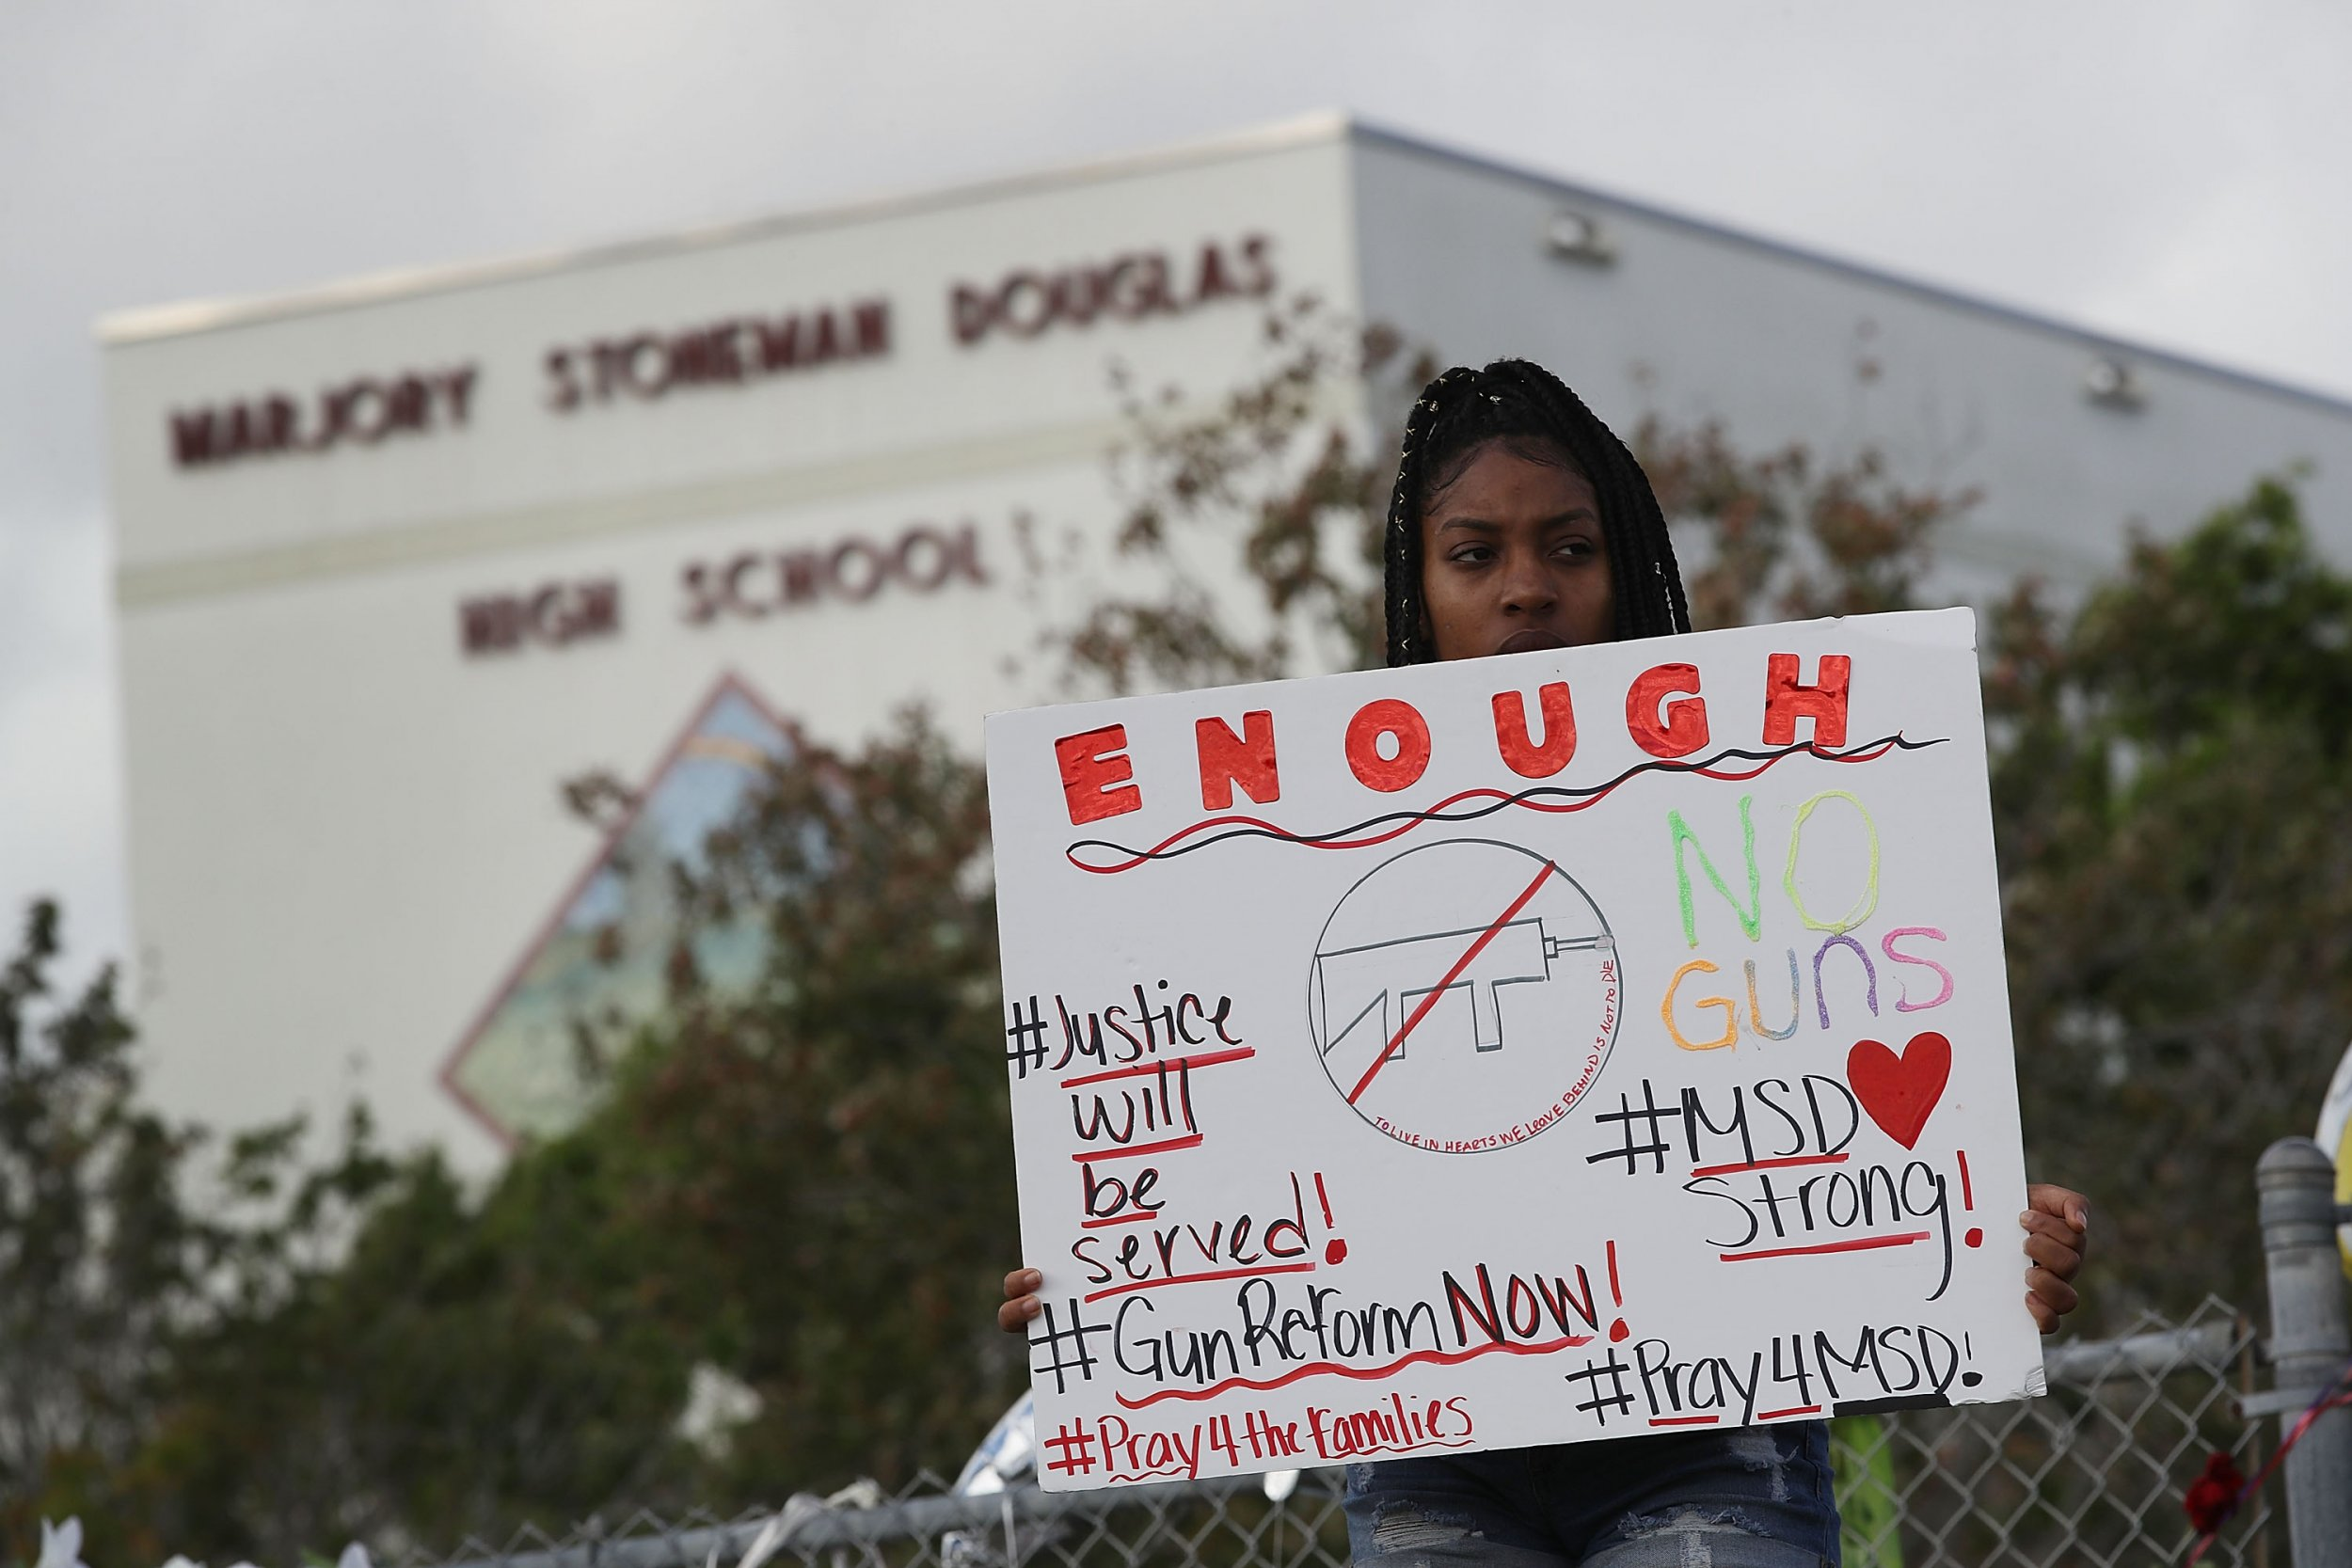 After Florida shooting, support for stricter gun control laws reaches new high in poll